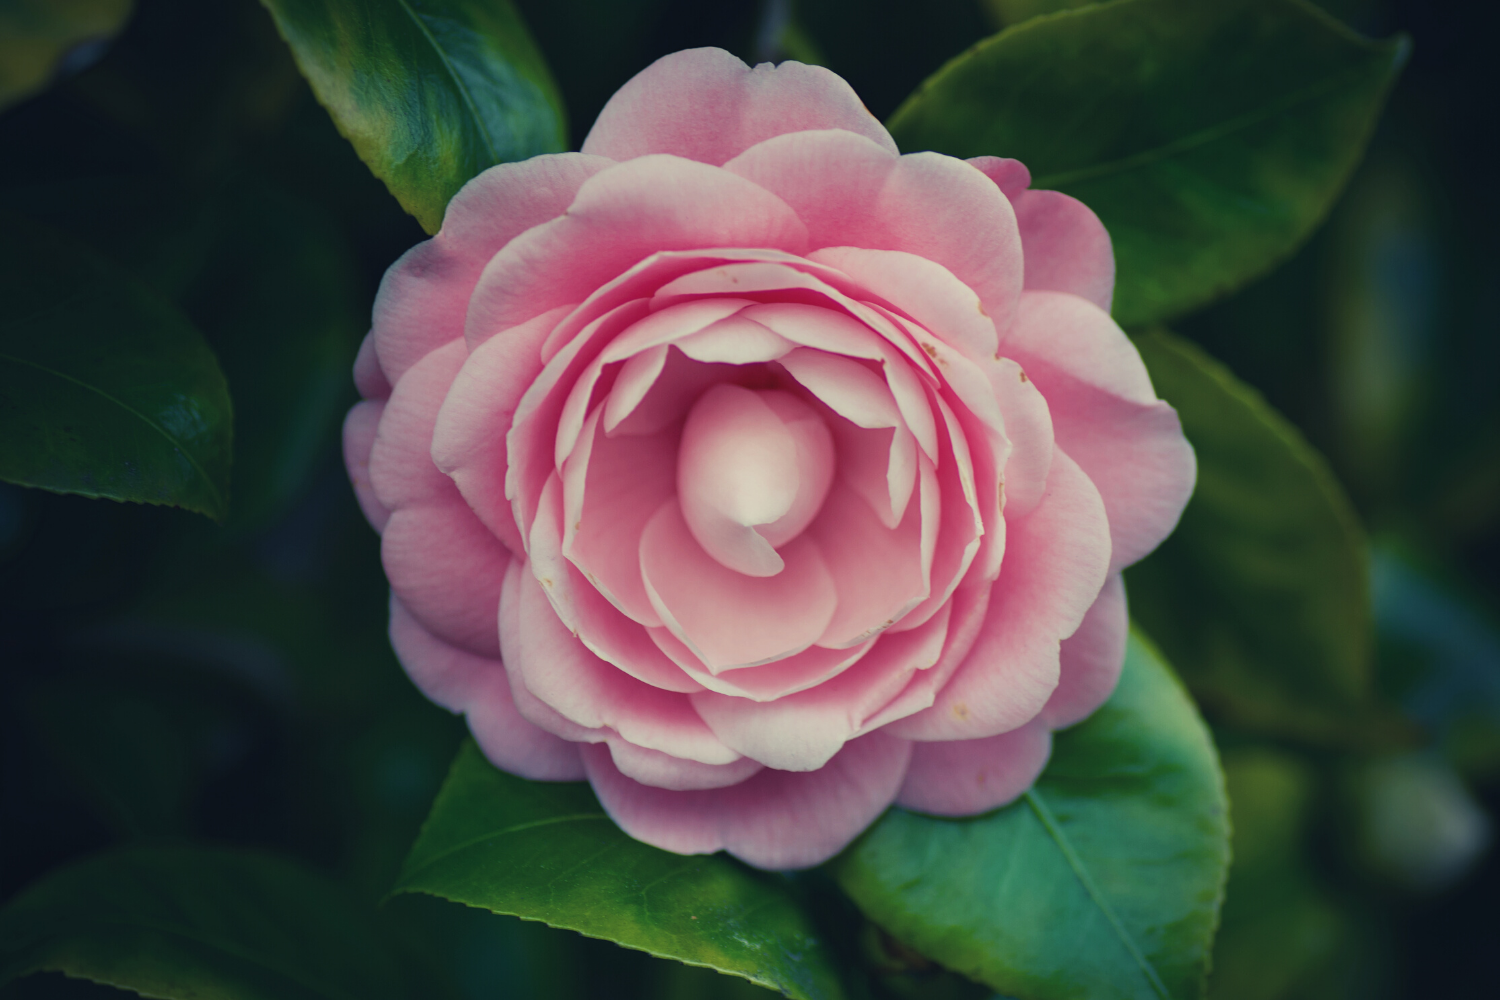 A pink rose surrounded by green leaves